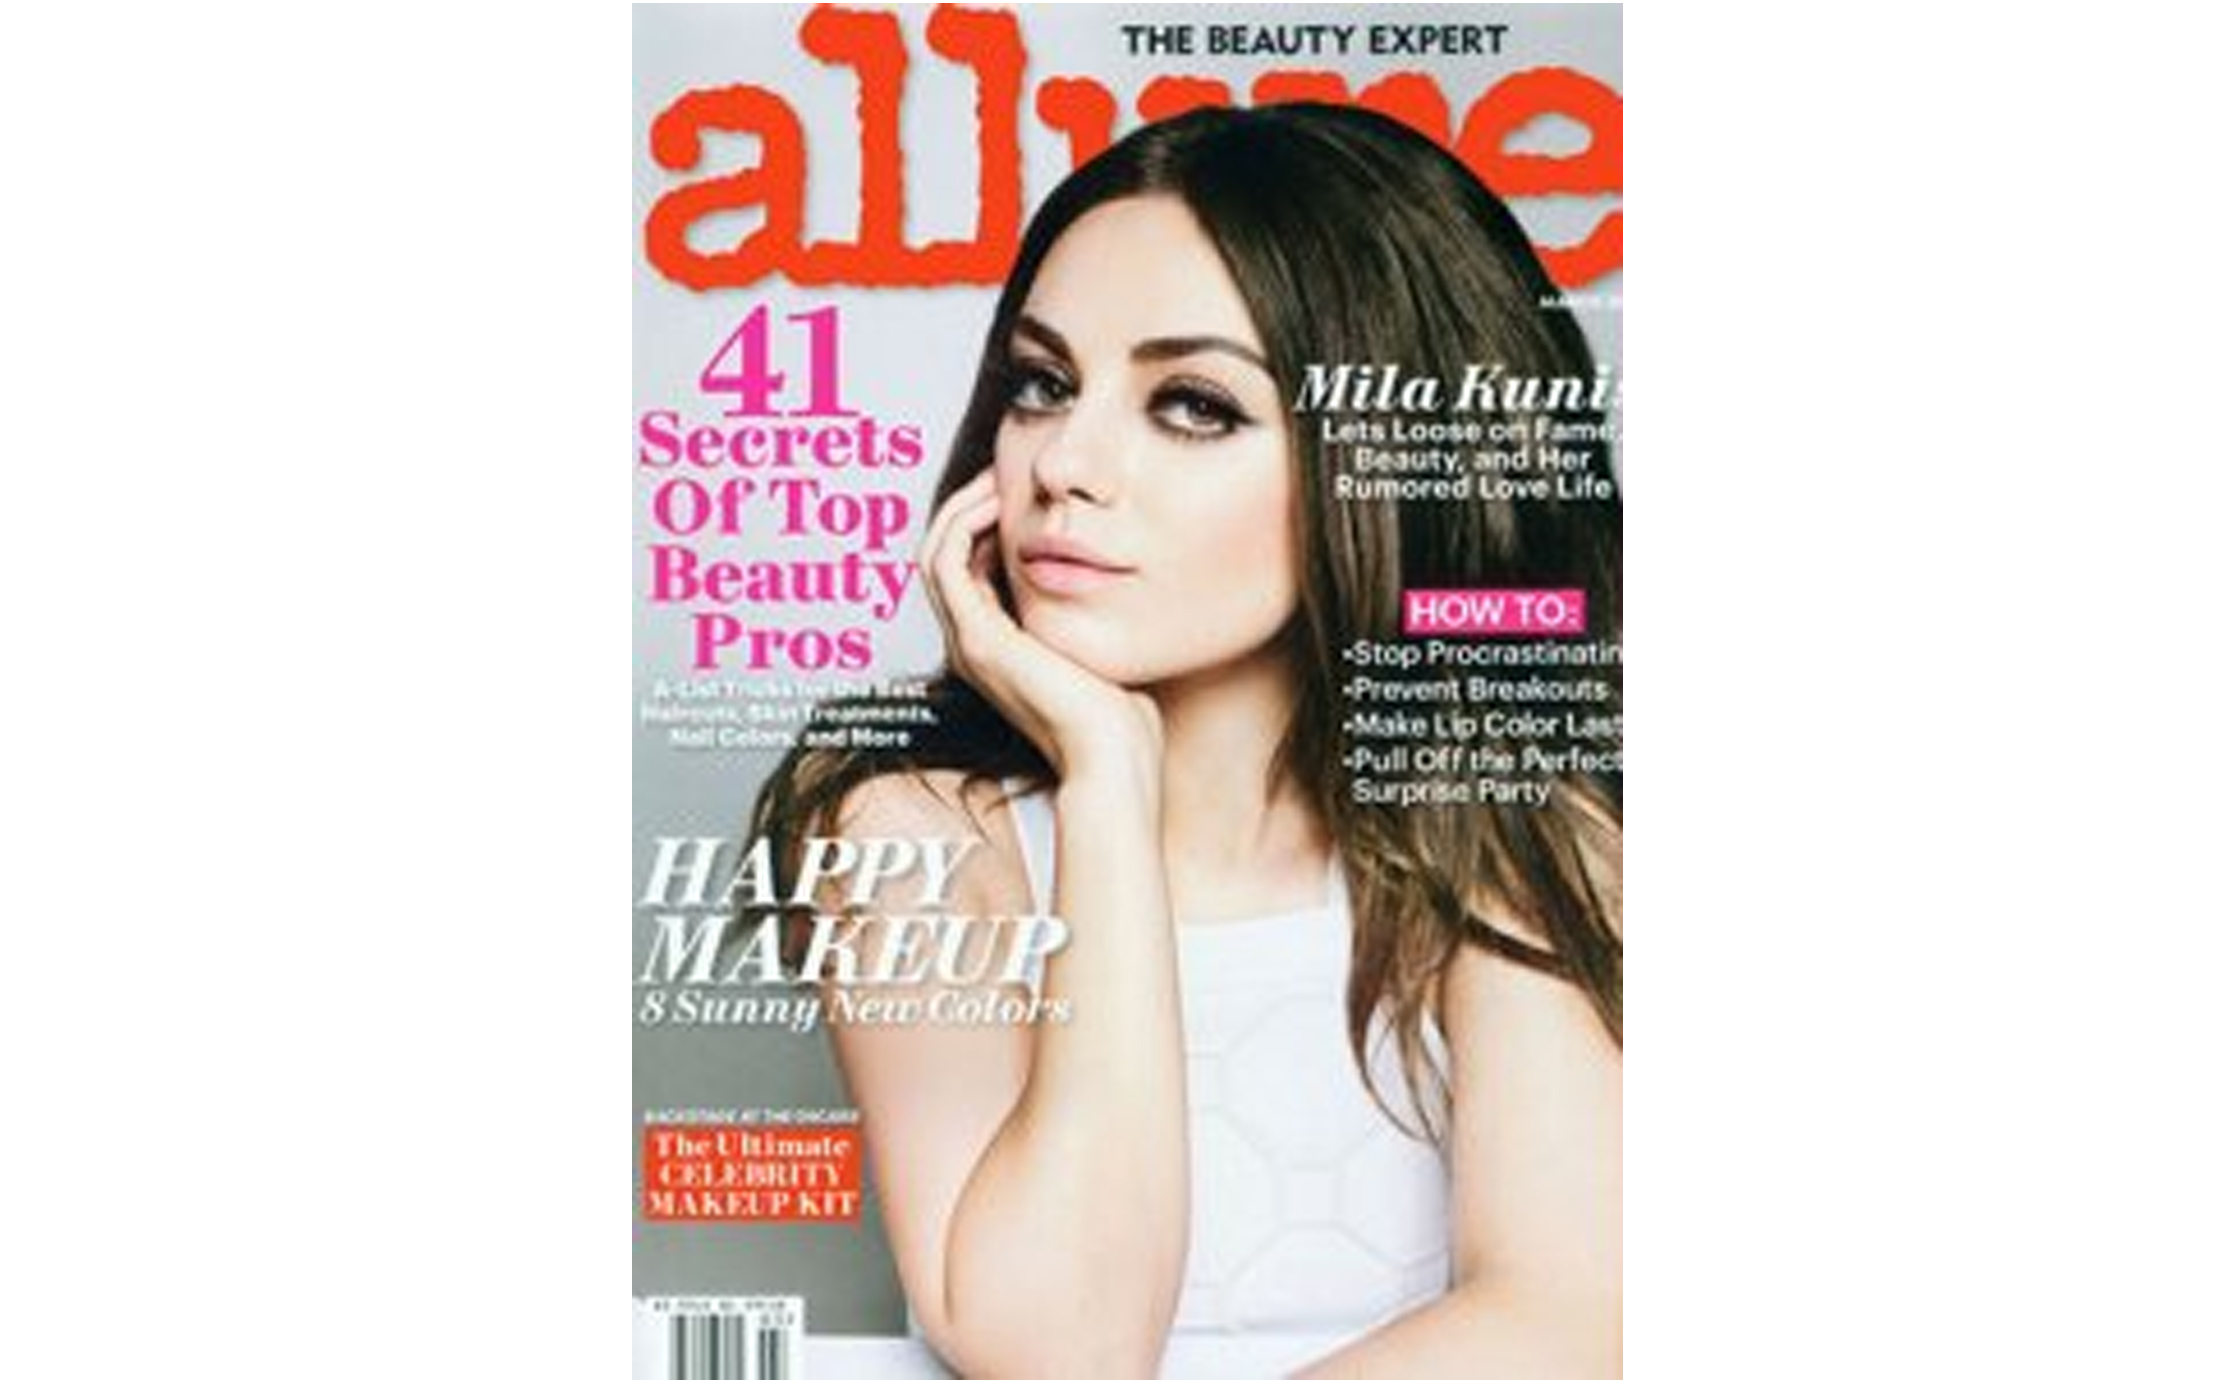 ALLURE // How to Host a Surprise Party featuring annie campbell